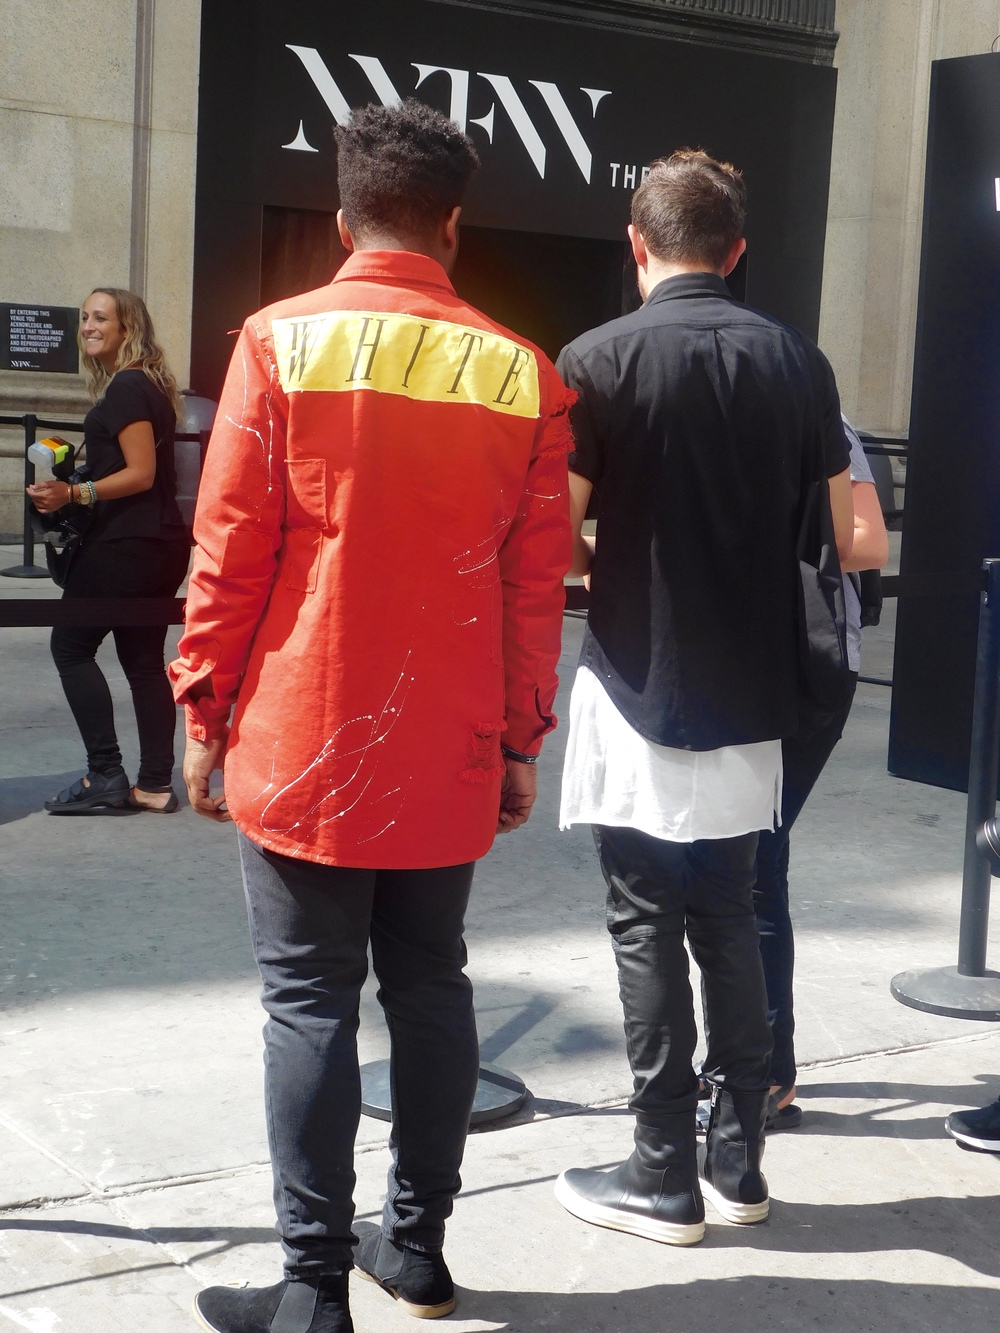 Jairus Pollard wearing OFF-WHITE jacket, and Jackson Ray wearing Daniel Patrick, BLK DNM and Rick Owens.